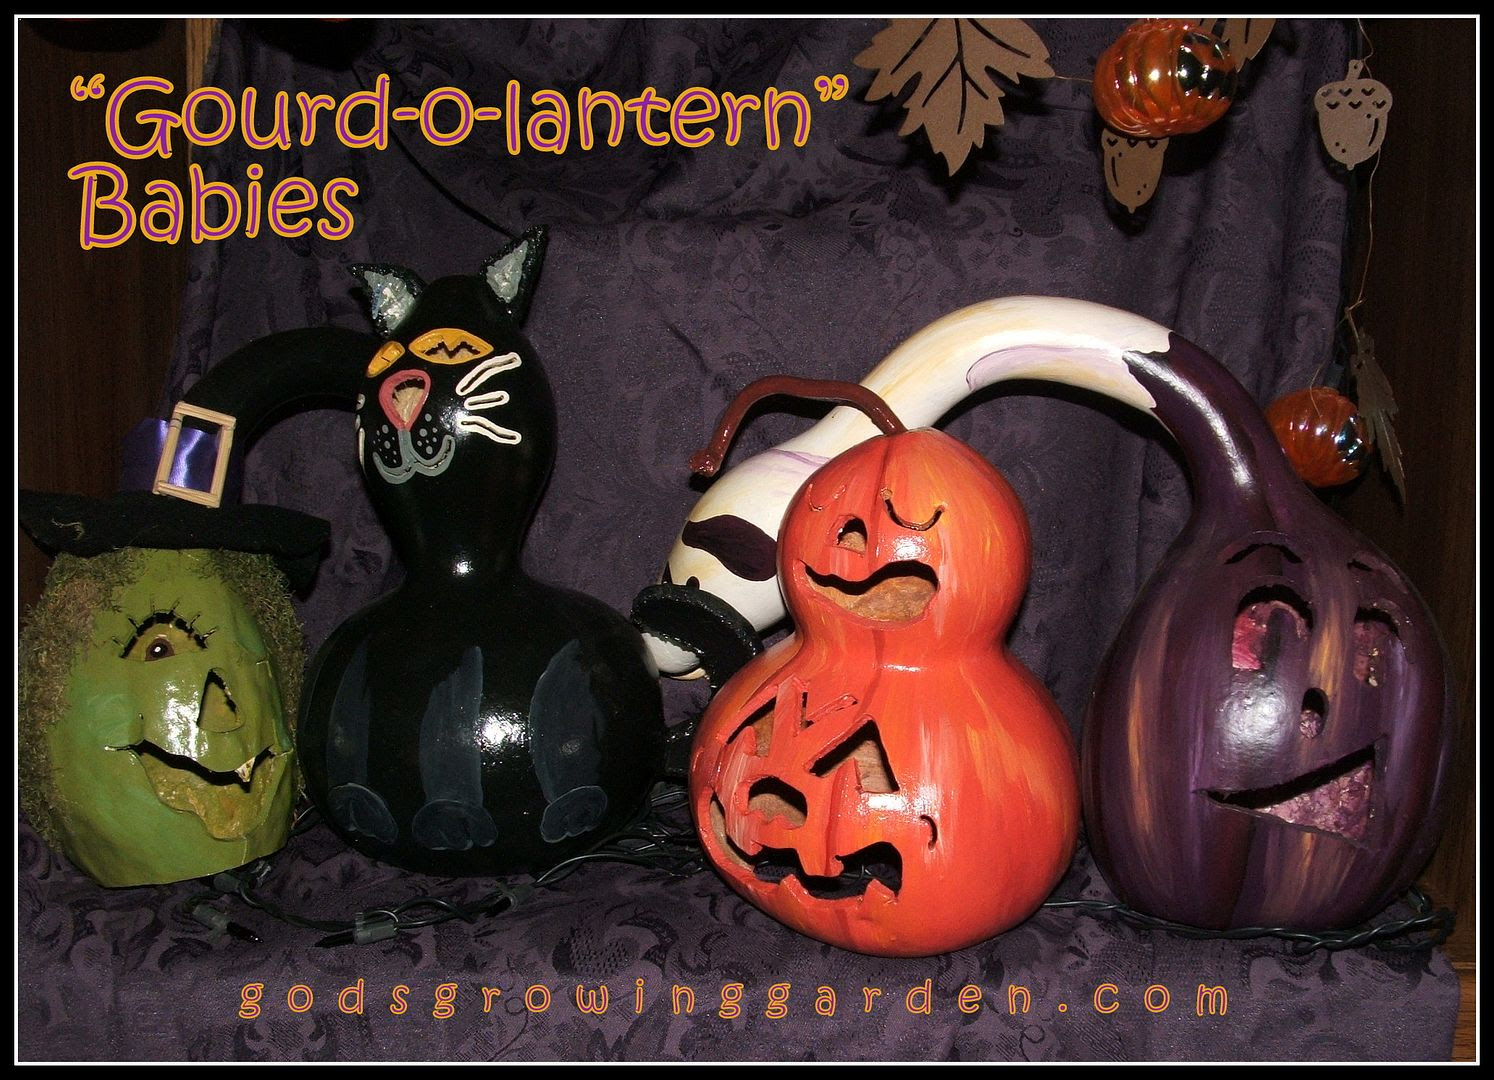 Gourd-o-lantern Babies by Angie Ouellette-Tower for godsgrowinggarden.com photo 005_zpsa1f97c03.jpg